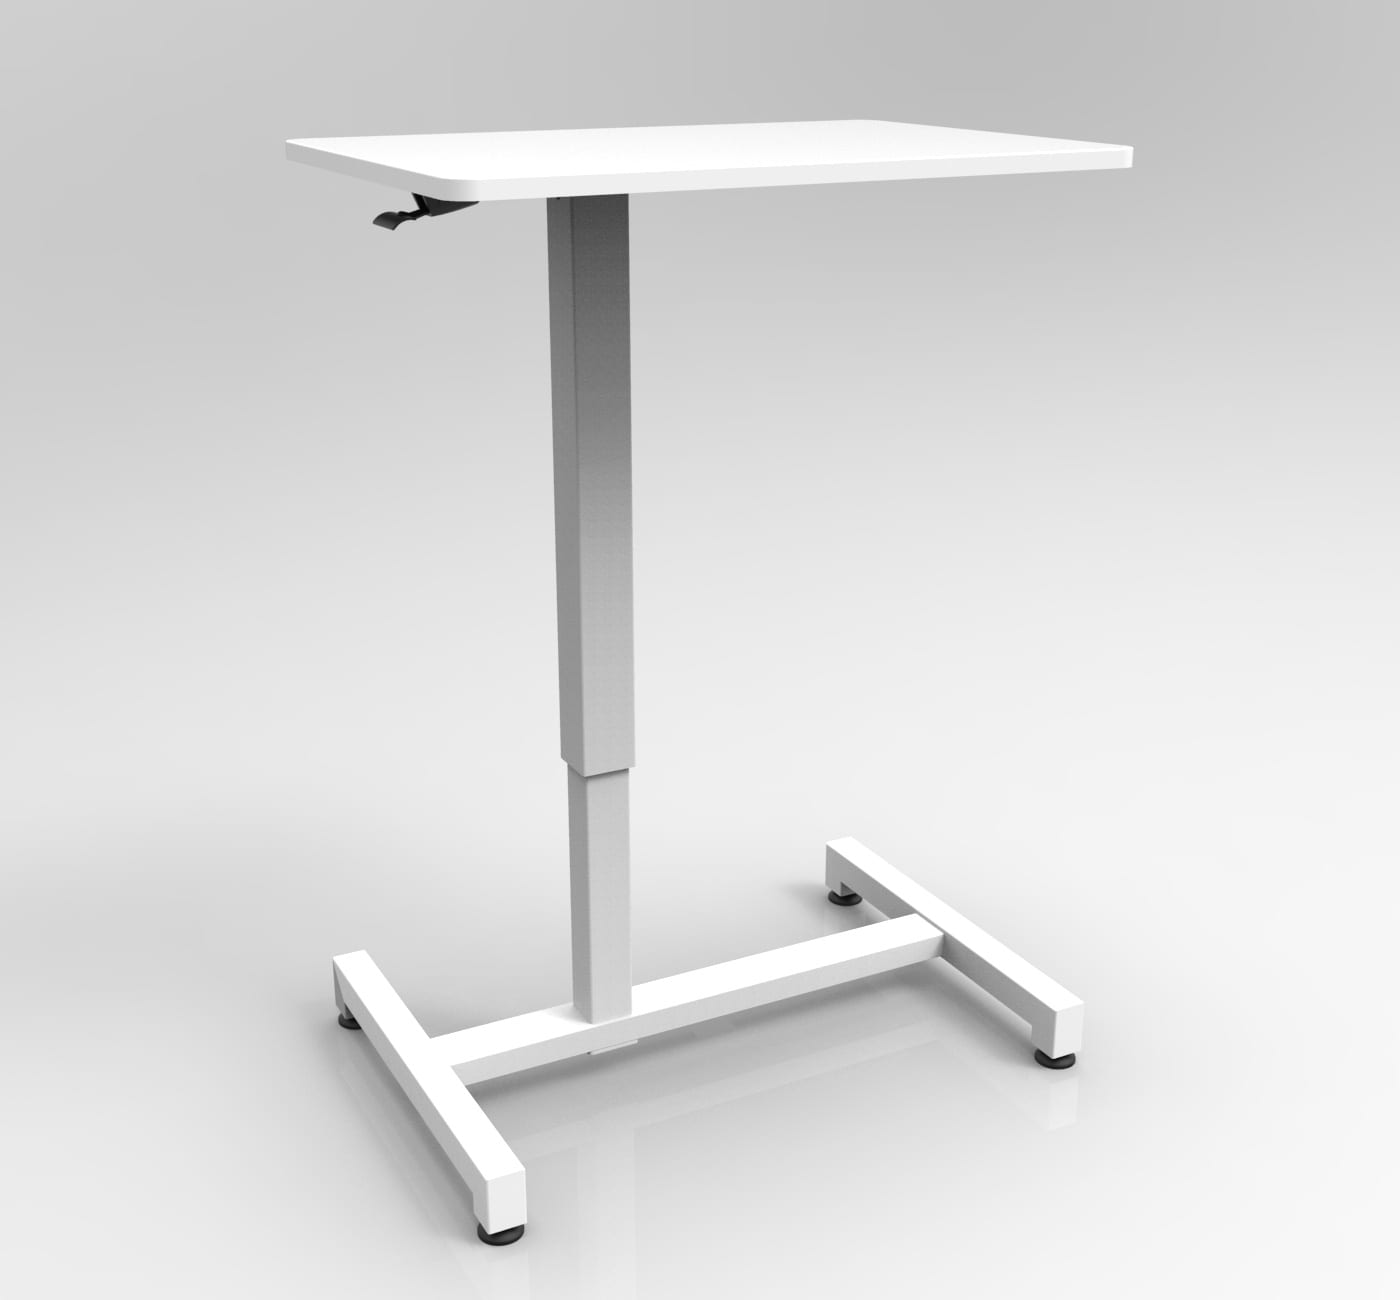 GBT05 overbed table gas spring height adjustable